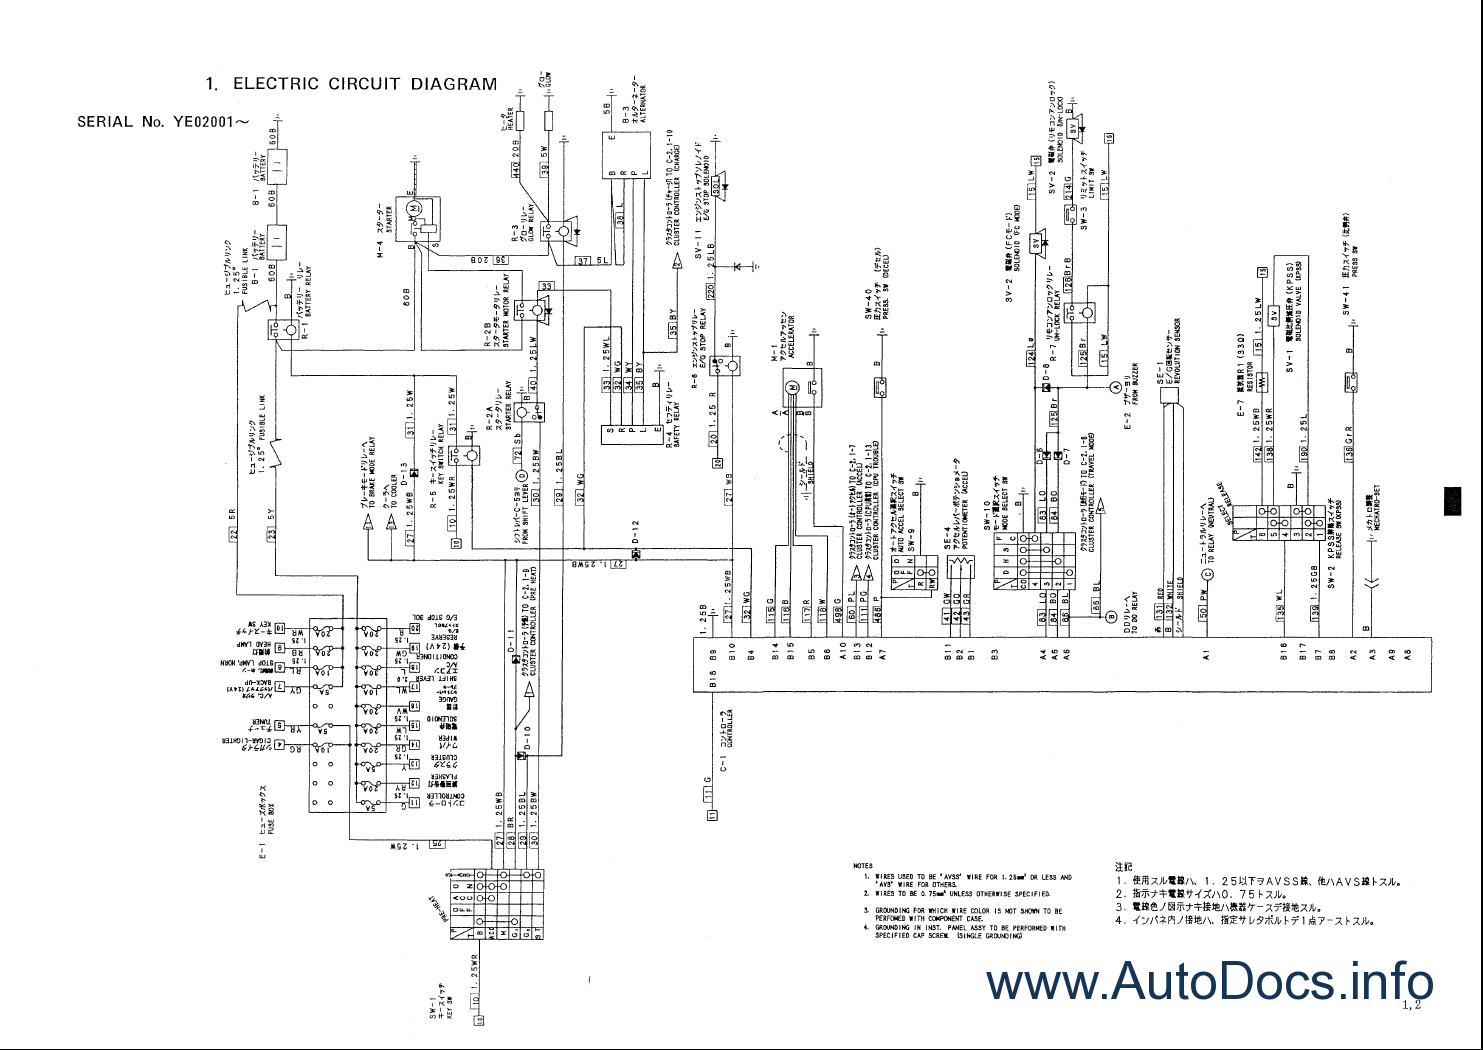 chevrolet 3 4 engine diagram  chevrolet  free engine image